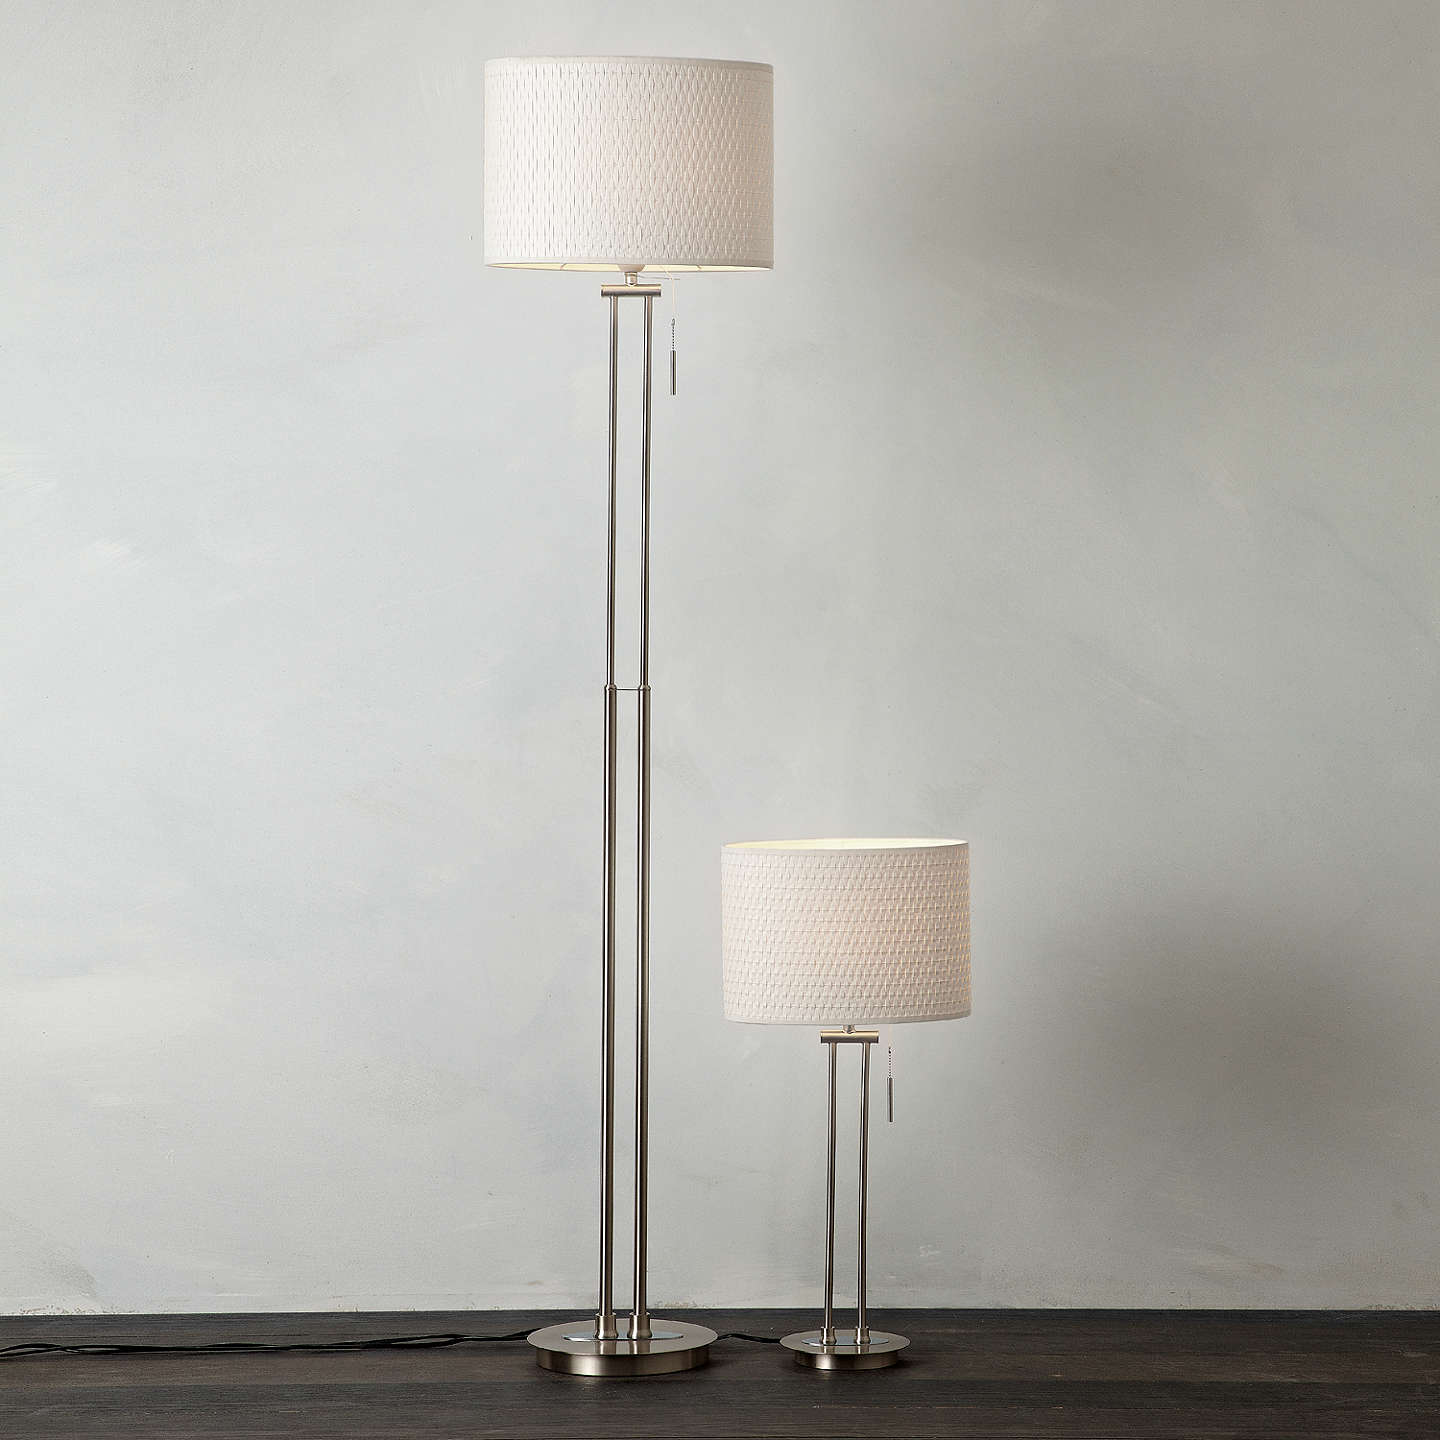 John lewis preston table and floor lamp duo at john lewis buyjohn lewis preston table and floor lamp duo online at johnlewis mozeypictures Choice Image